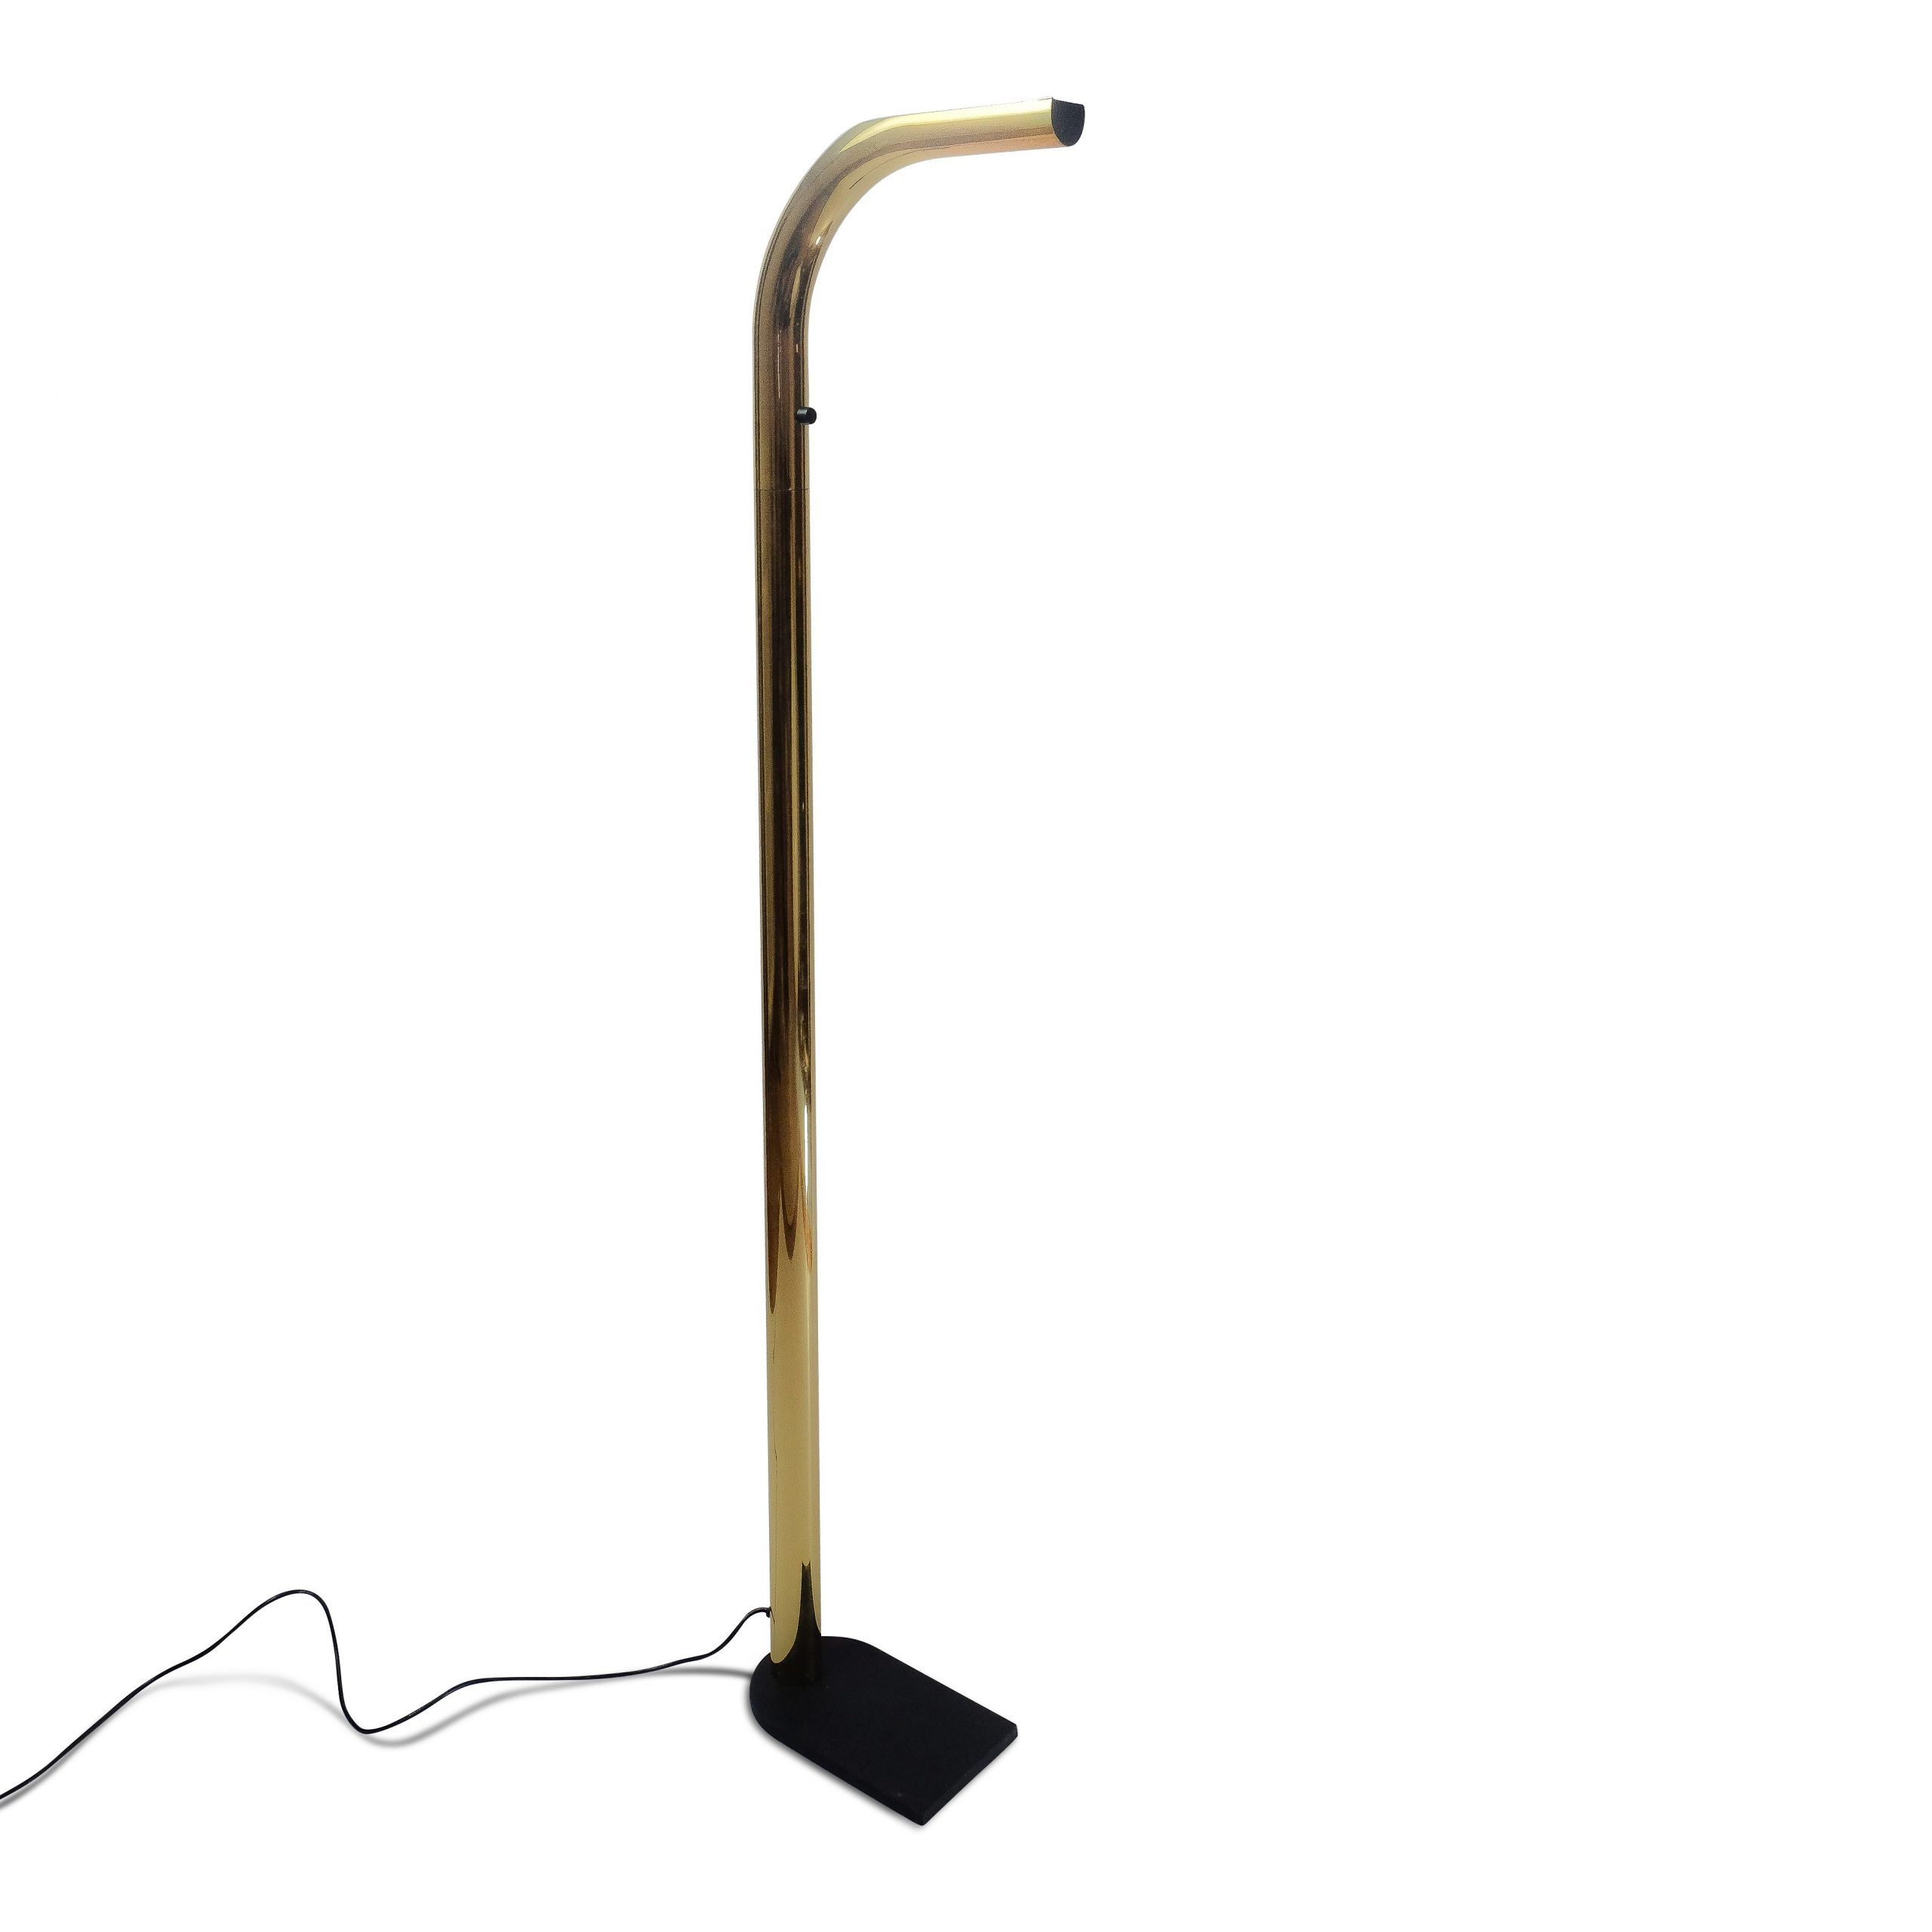 Model Oca Floor Lamp by Eleusi, Italian Vintage Lamp